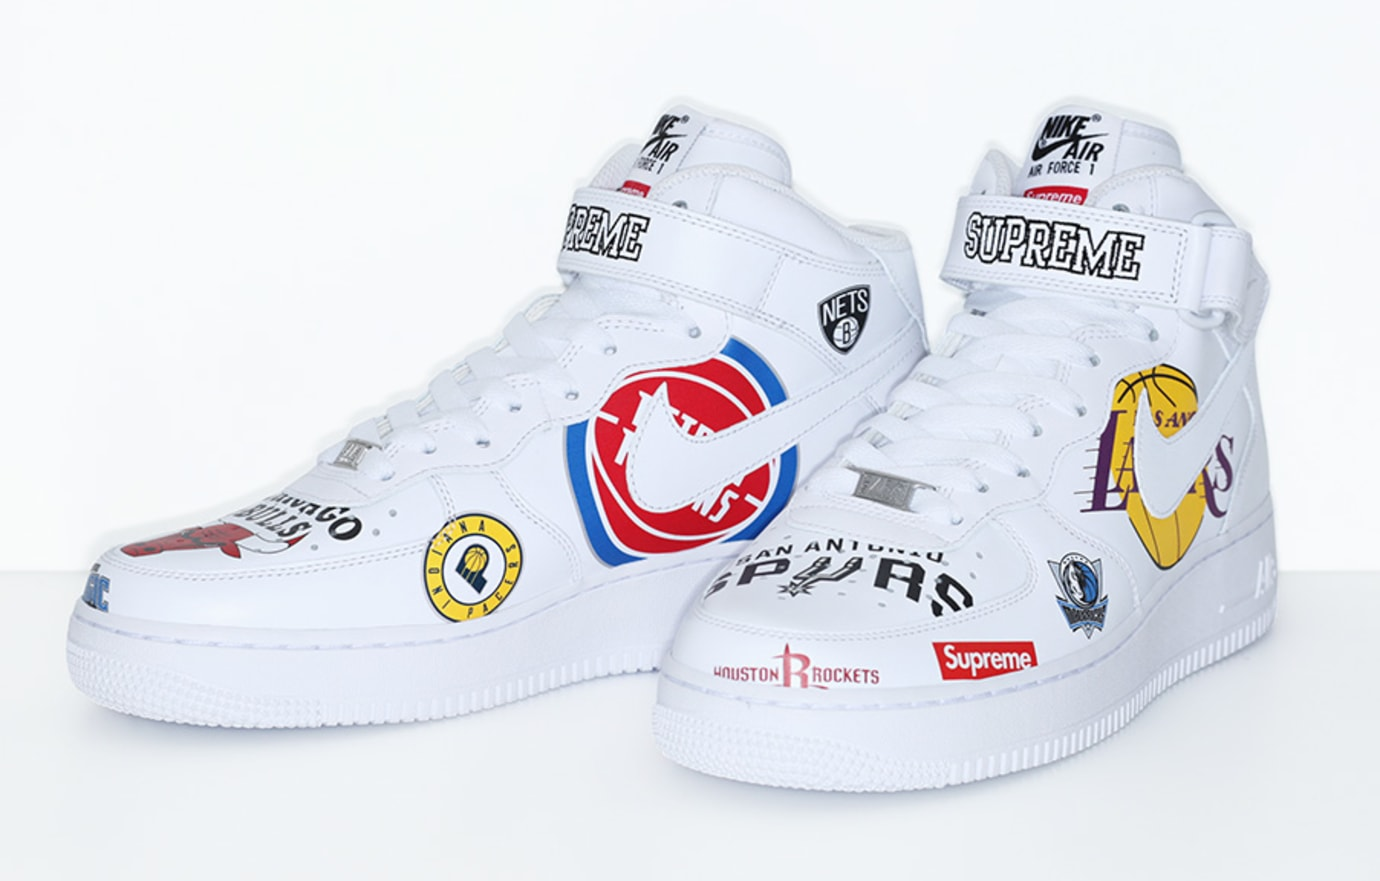 Supreme x Nike x NBA Air Force 1 Mid 'White' AQ8017-100 (Pair)